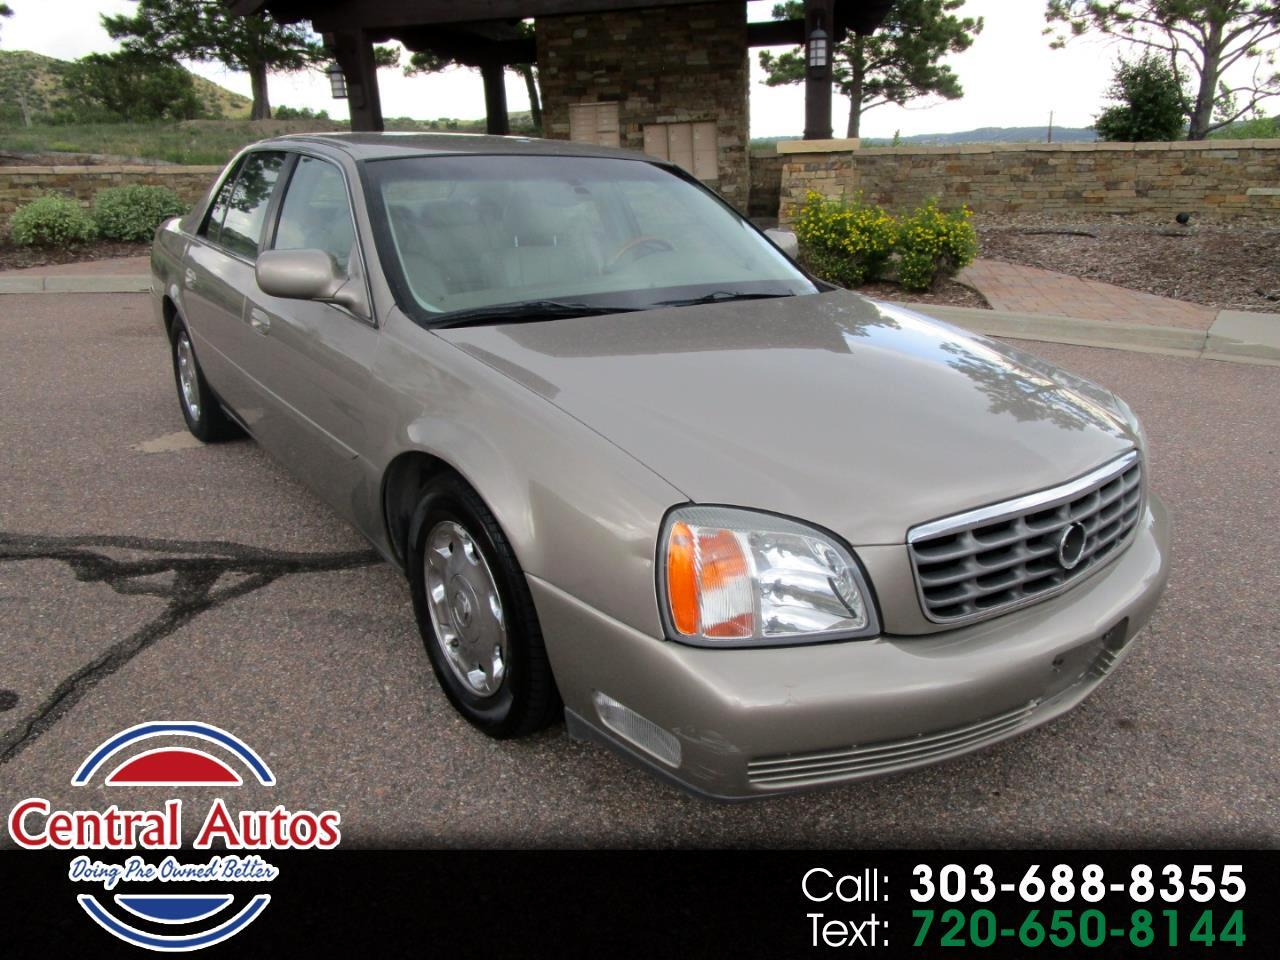 2002 Cadillac DeVille 4dr Sdn DHS